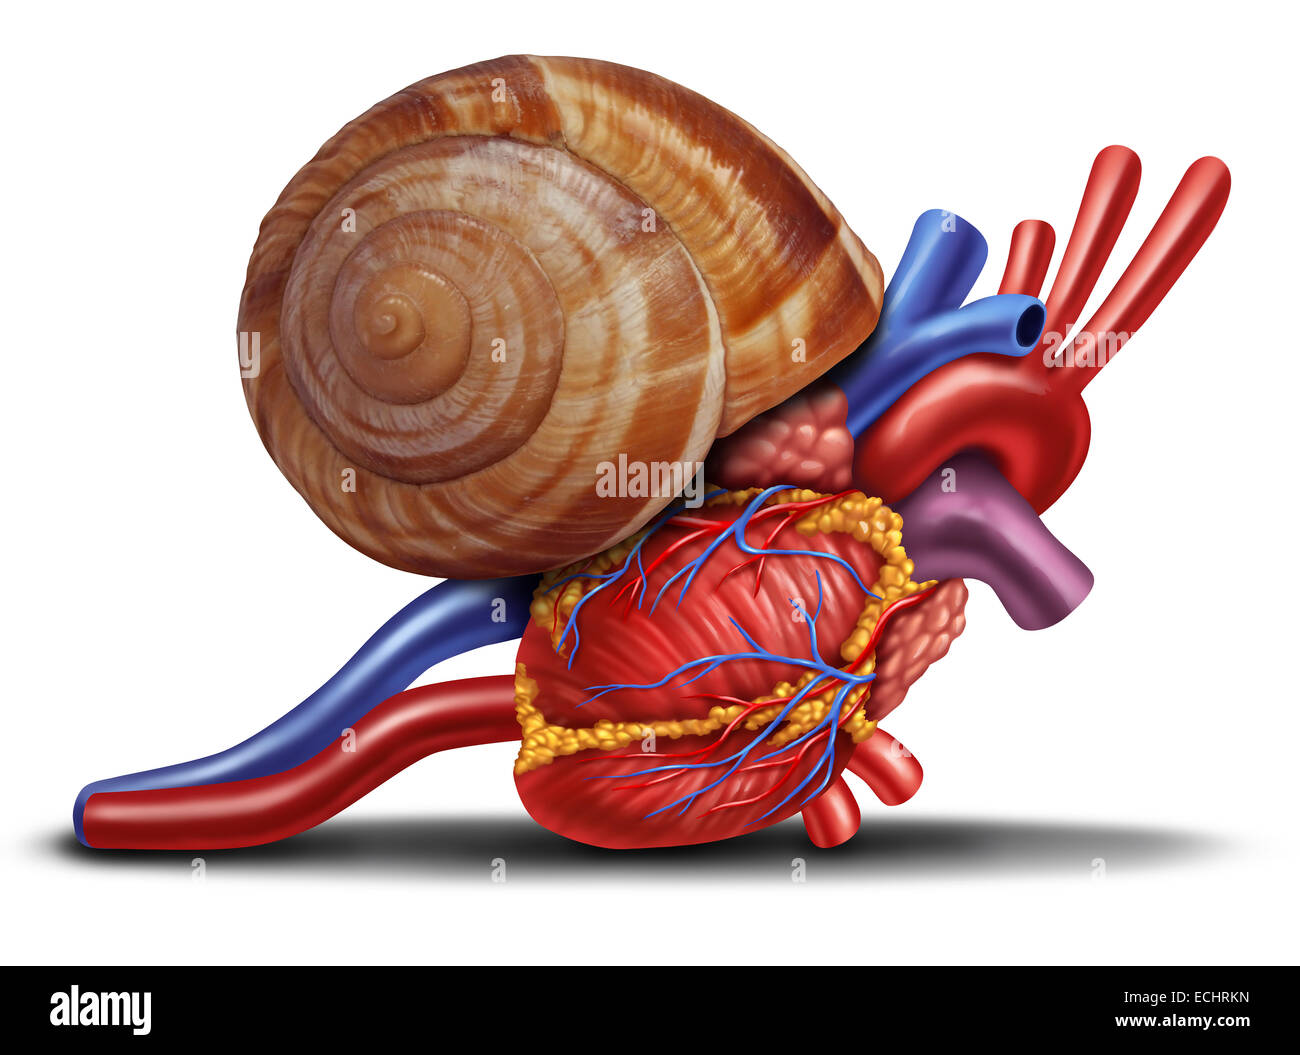 Slow heart rate concept as a snail shell on human anatomy from an unhealthy body as a medical health care symbol - Stock Image